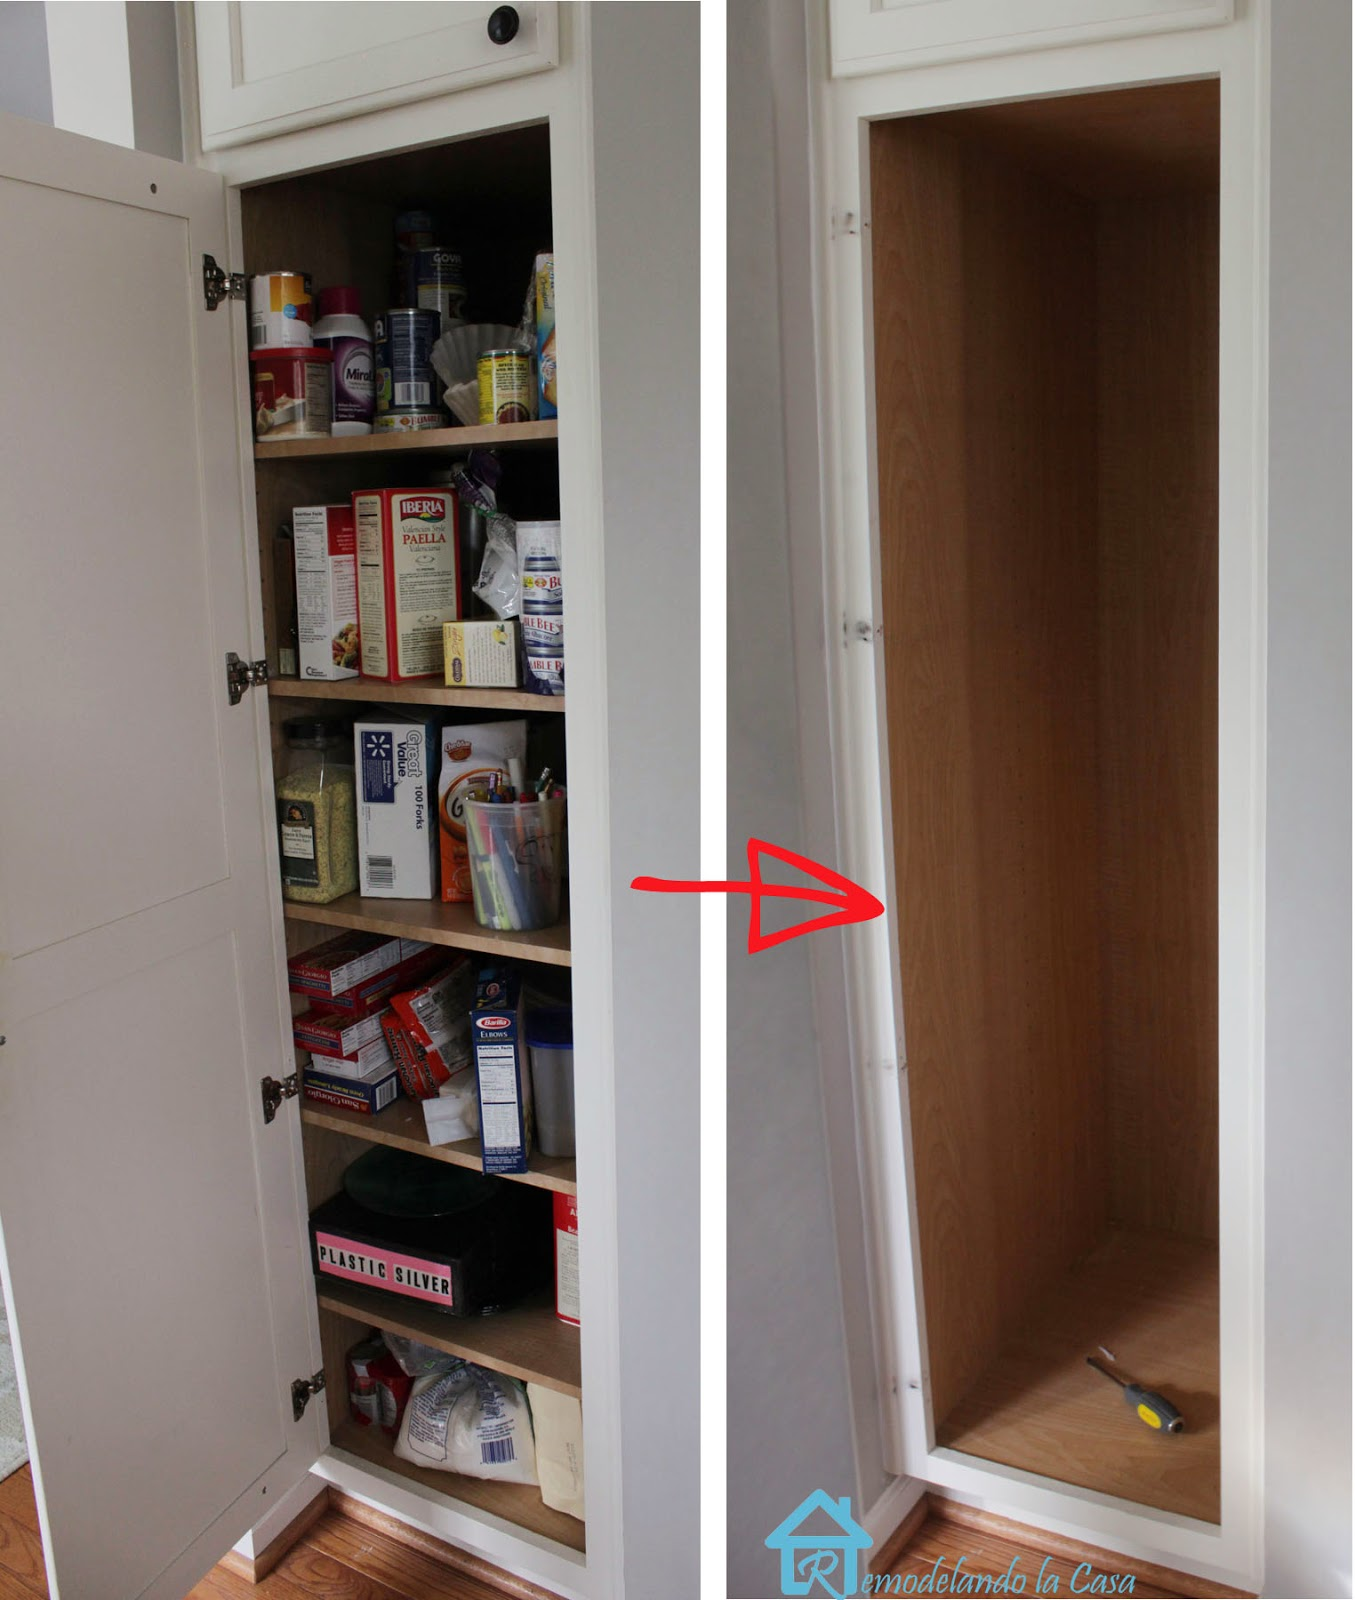 Medium image of pantry cabinet is emptied for slide installation